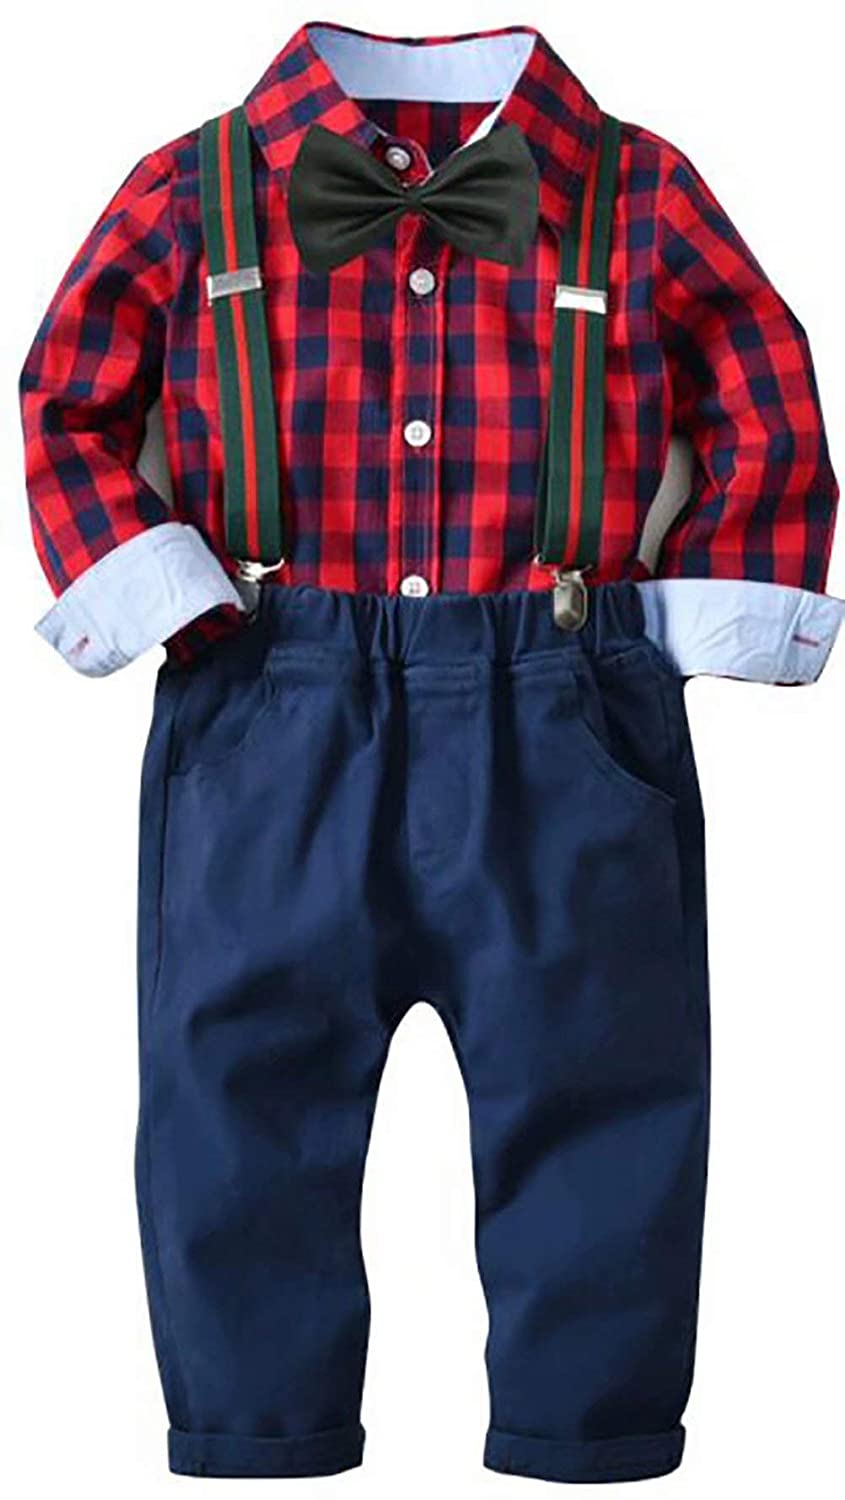 SUPEYA Toddler Baby Boys Gentlemen Long Sleeve Plaid Shirts Suspender Pants 2Pcs Set